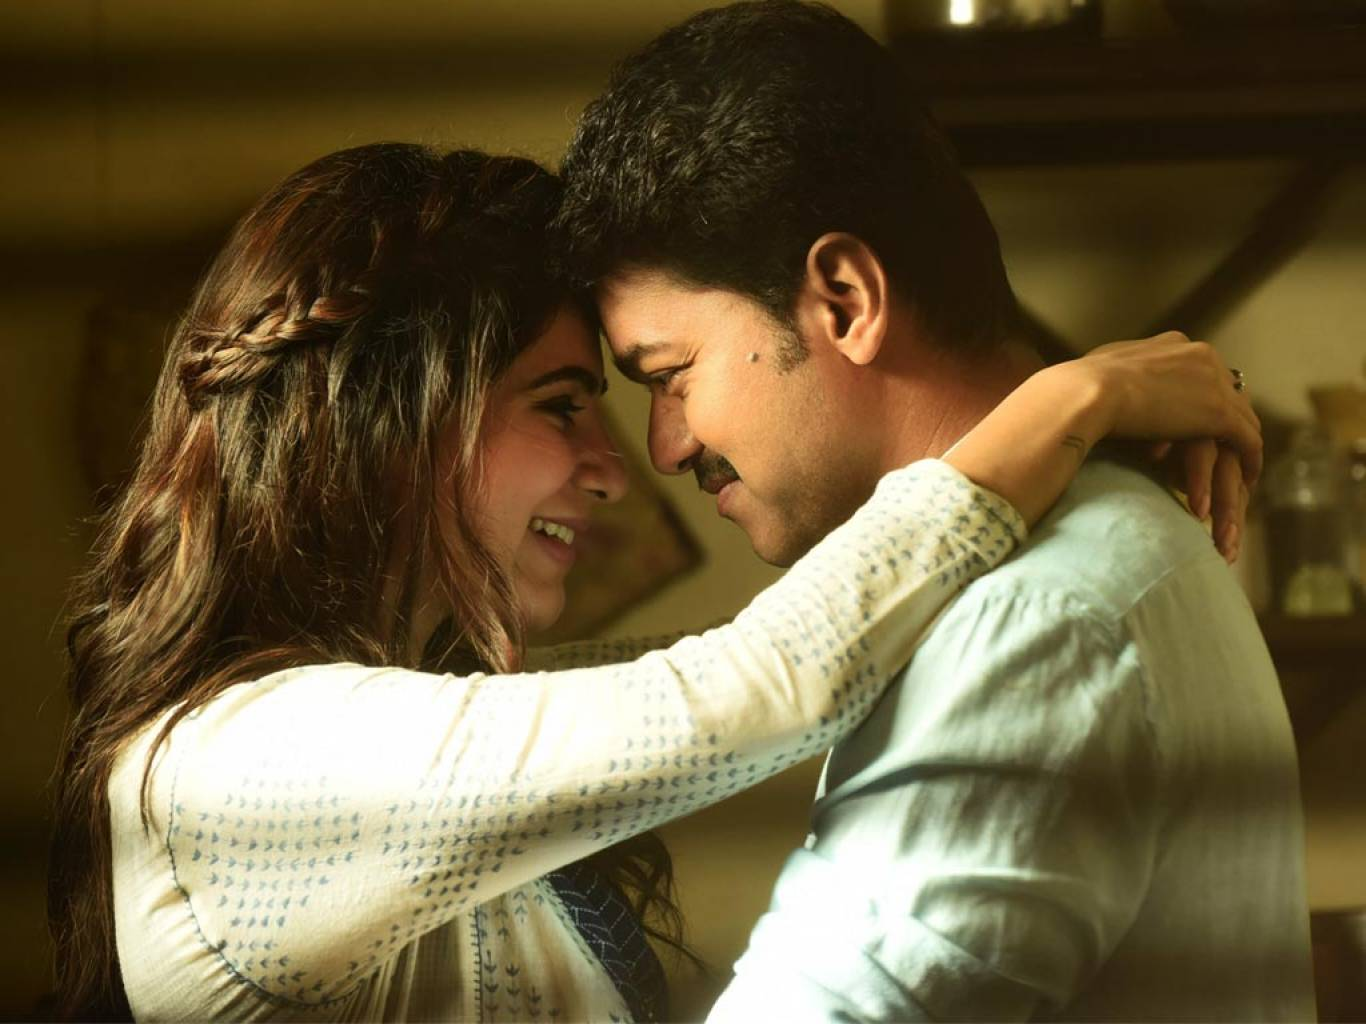 Mersal Movie Hd Wallpapers Mersal Hd Movie Wallpapers Free Download 1080p To 2k Filmibeat